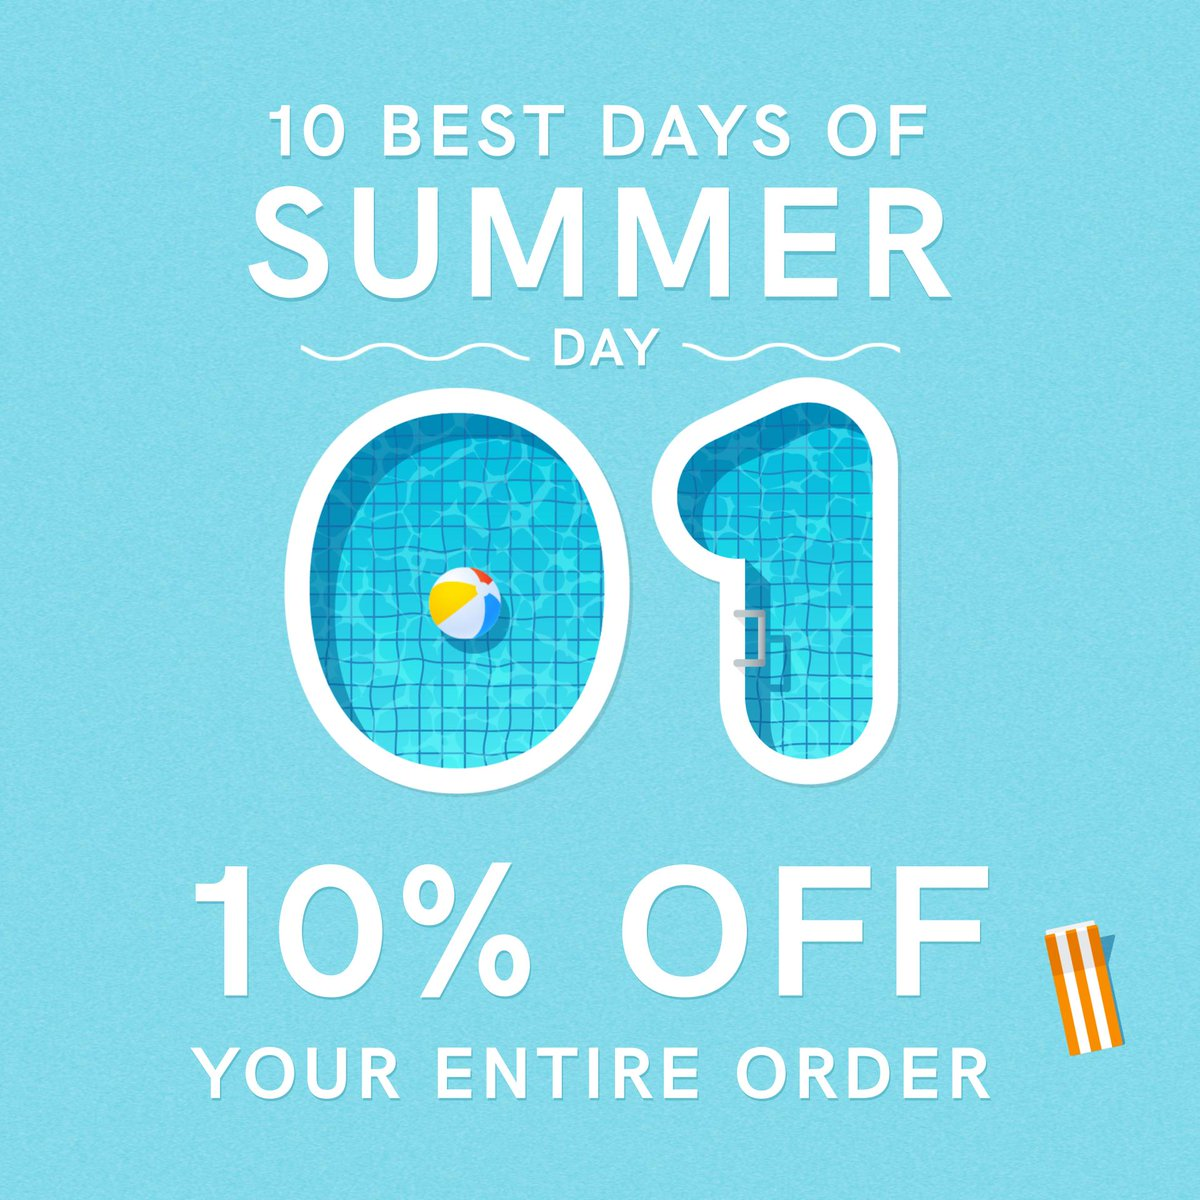 The 10 Best Days of Summer are here and with it, the hottest deals of the season! Today we're kicking things off with 10% off your entire order. What are you waiting for? Dive on in at the link below!!  Shop Now: https://t.co/f34cTTJide https://t.co/M6bkwcK0K7